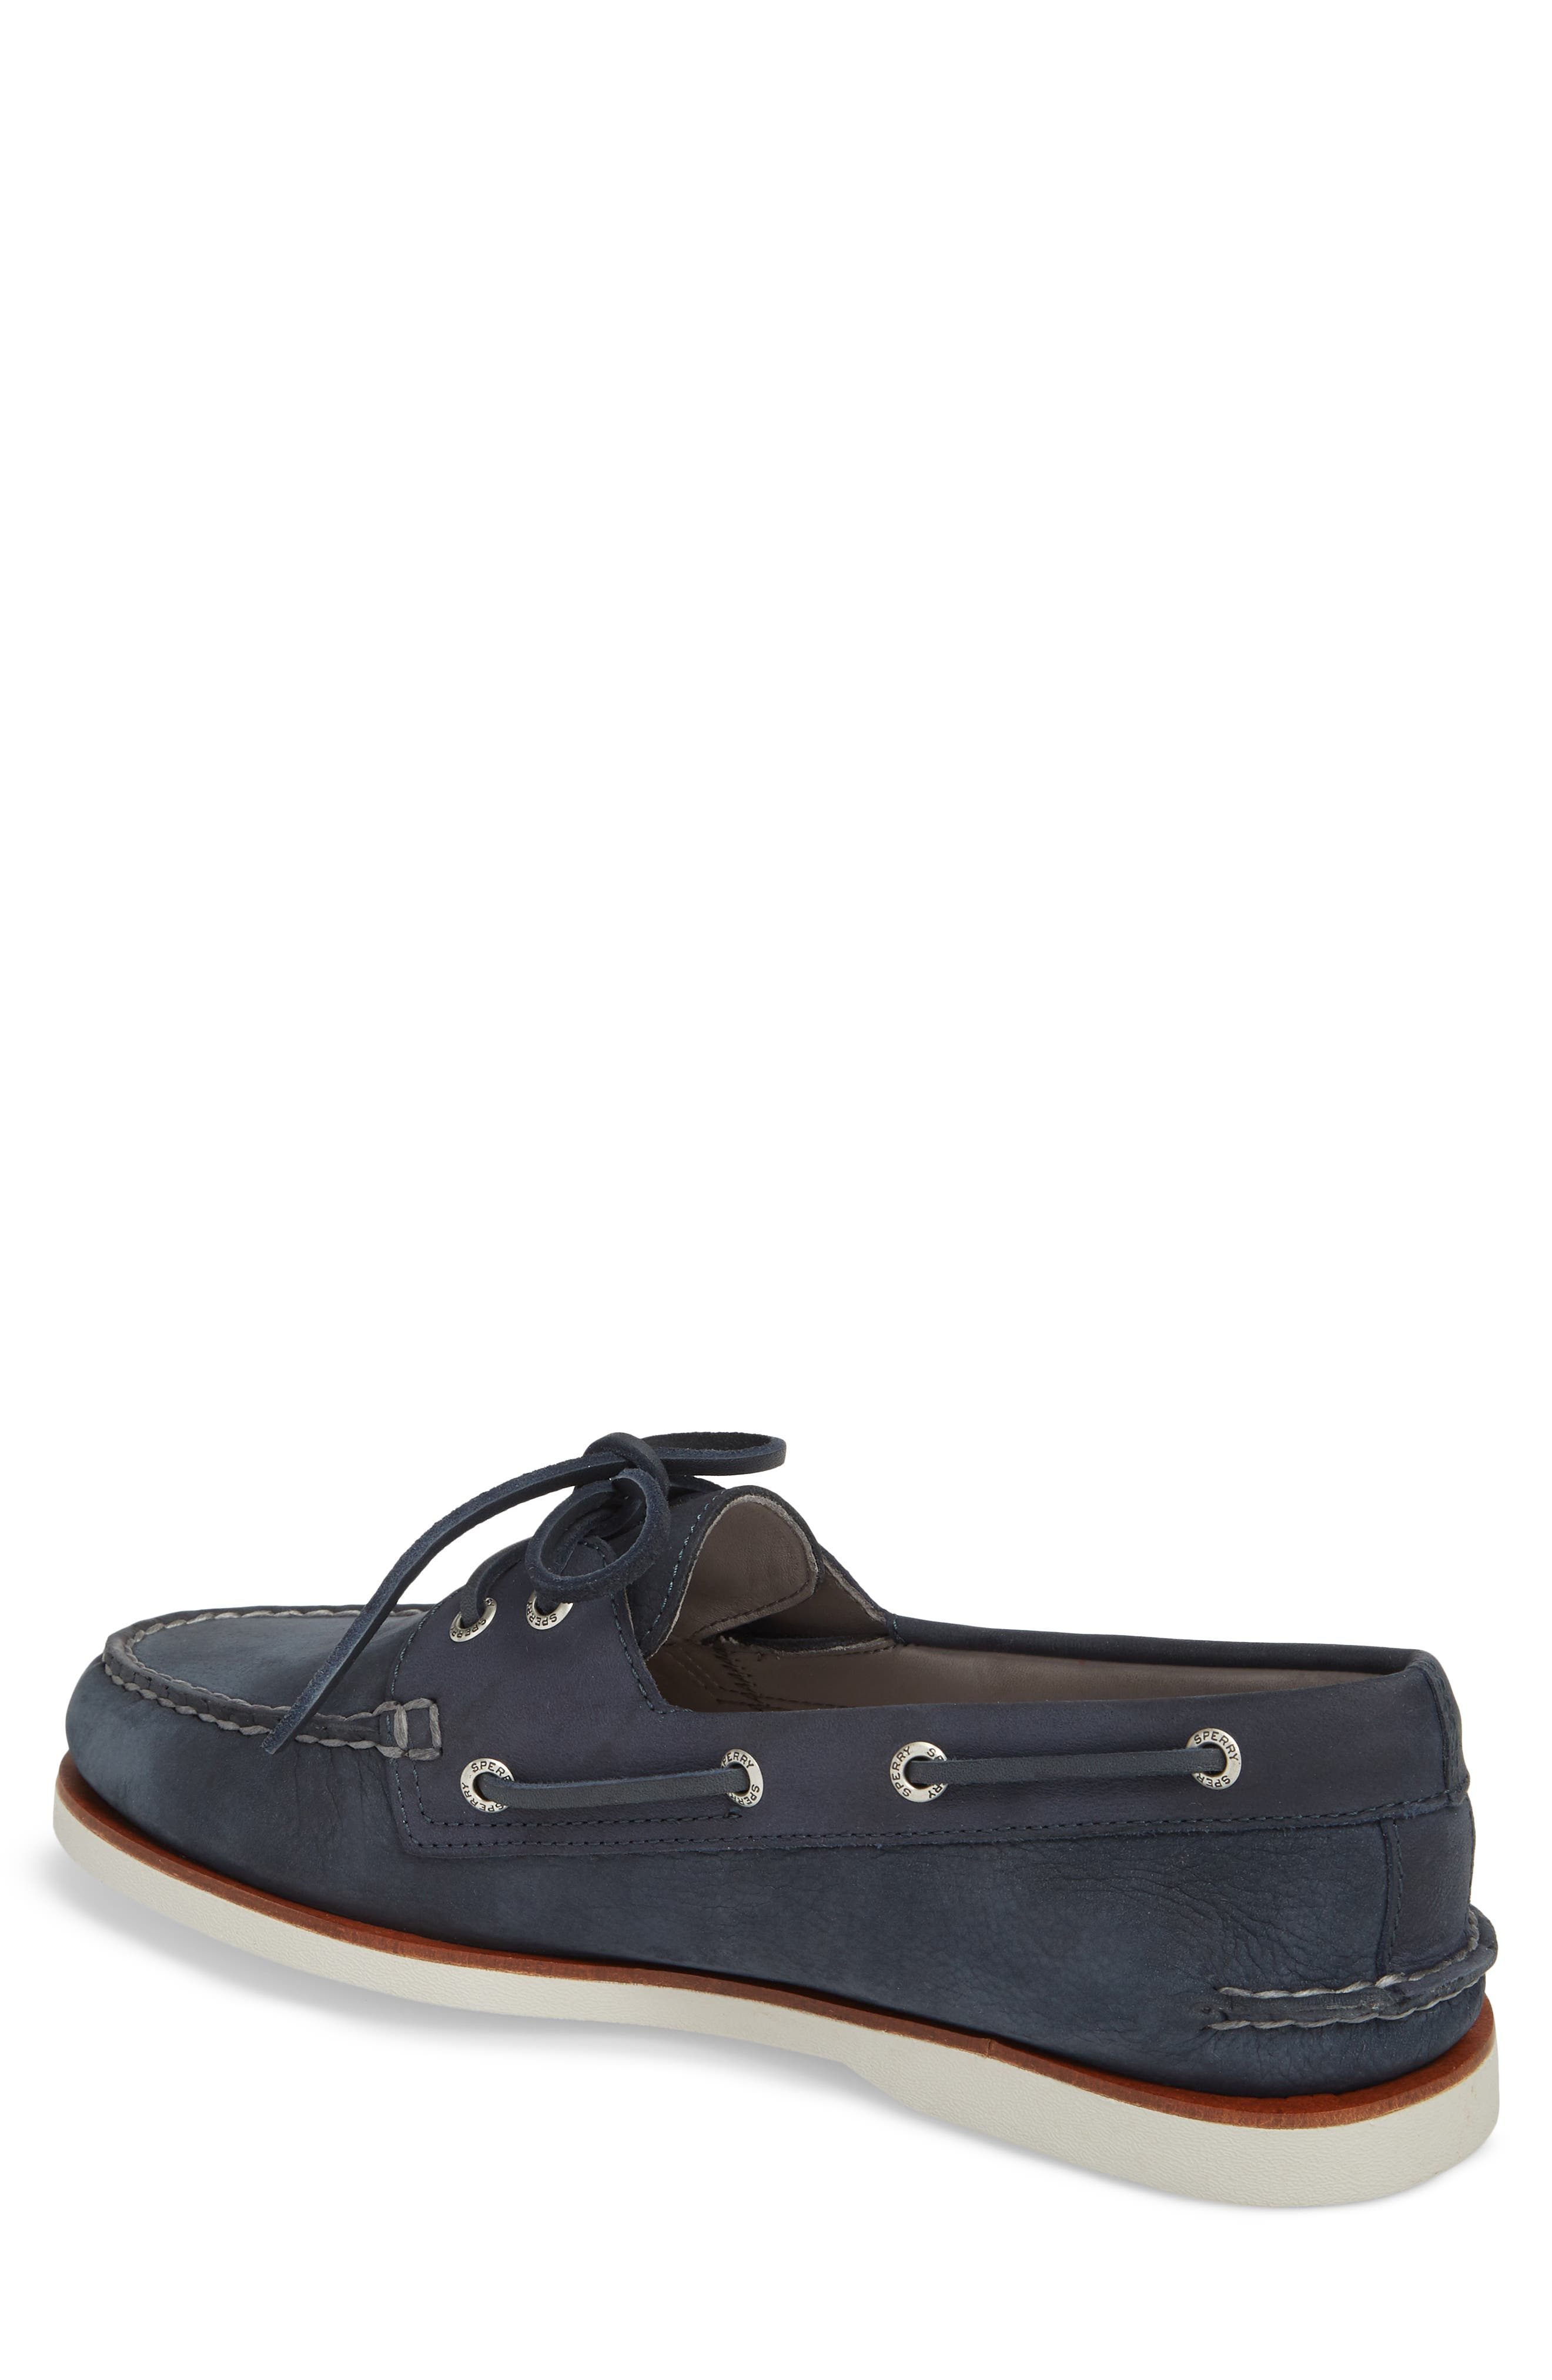 'Gold Cup - Authentic Original' Boat Shoe,                             Alternate thumbnail 2, color,                             BLUE/ NAVY LEATHER